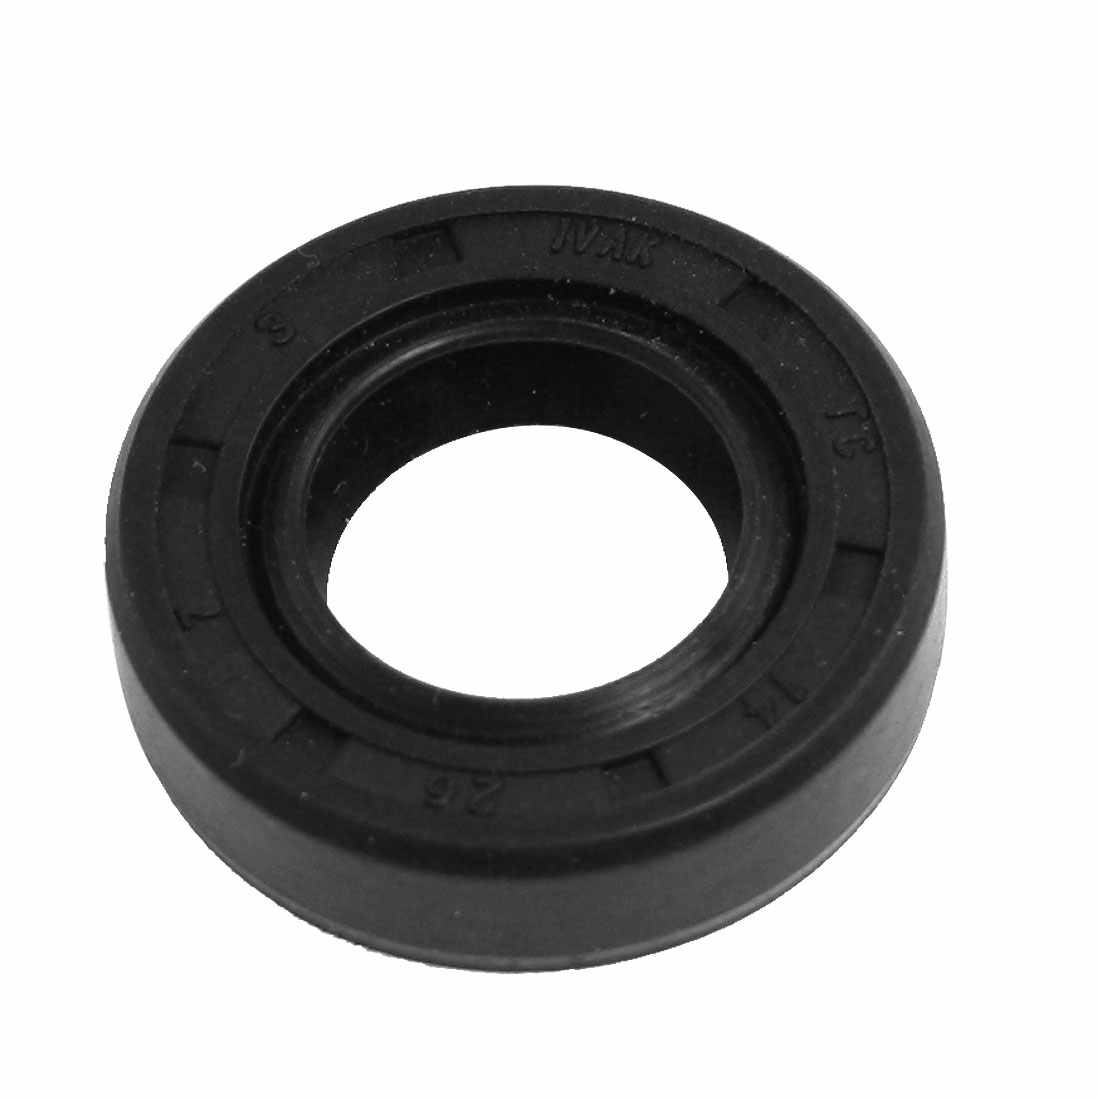 Uxcell 7mm Metric Tc Borracha Nitrílica Duplo Lip Oil Seal Id. | 14mm | 15mm | 16mm | 17mm